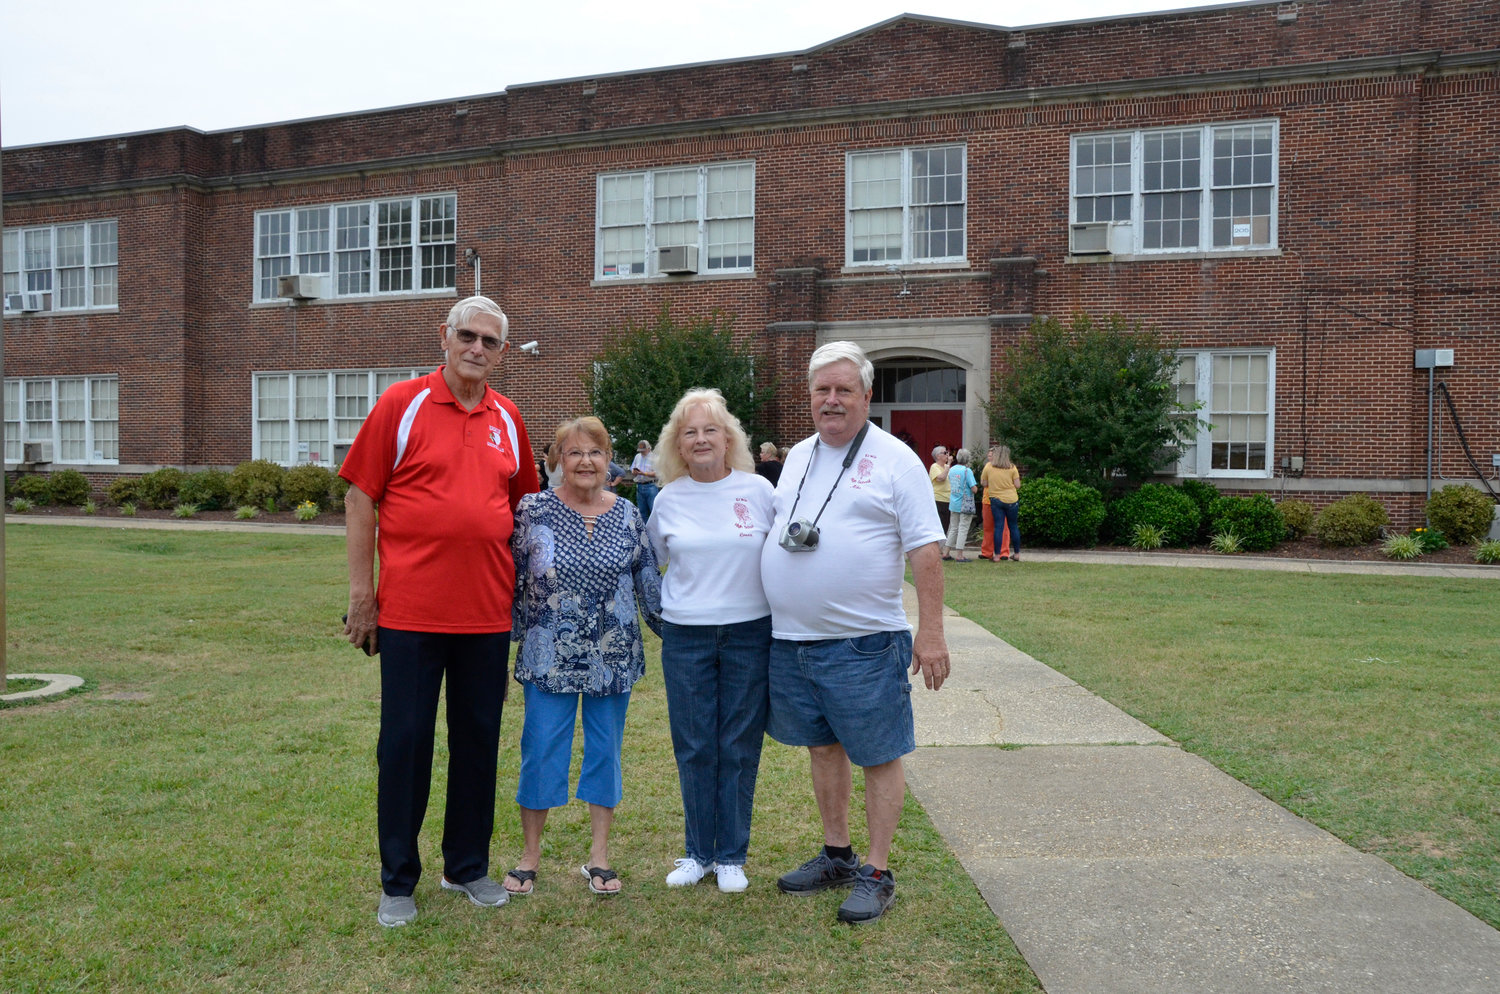 High school friends, from left, Jim and Jean Bradley of Erwin and Connie and Mike Johnson of Coats join a large crowd Thursday for a final walk through of their alma mater. Mr. and Mrs. Bradley graduated in 1966 and Mrs. Johnson in 1968.